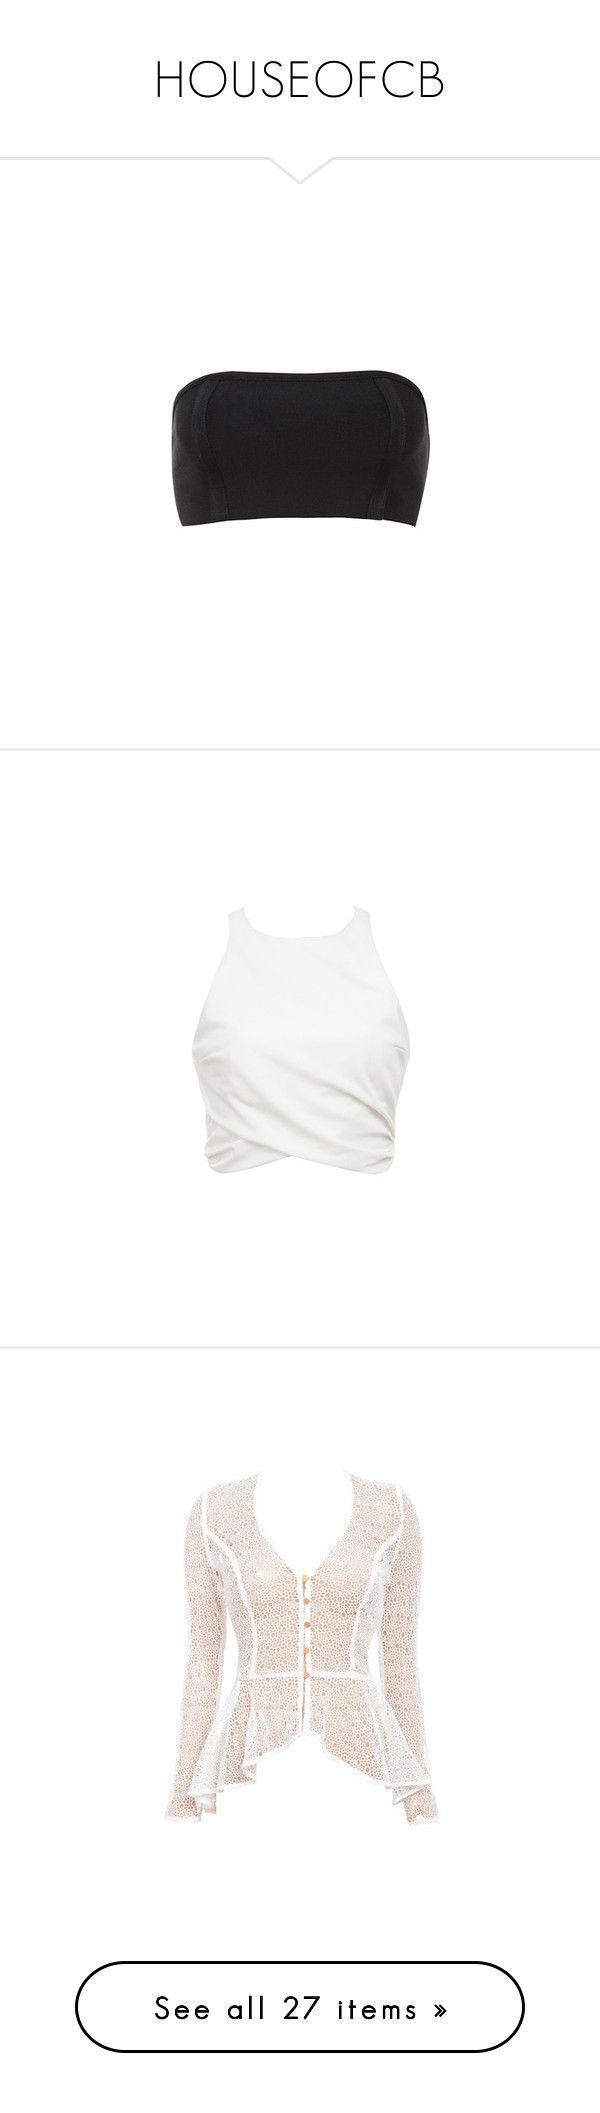 """""""HOUSEOFCB"""" by roexstylez89 ❤ liked on Polyvore featuring tops, stretch top, stretchy tops, bandage top, gold bandeau top, bandeau tops, white crop top, white top, white drape top and sleeveless drapey top"""